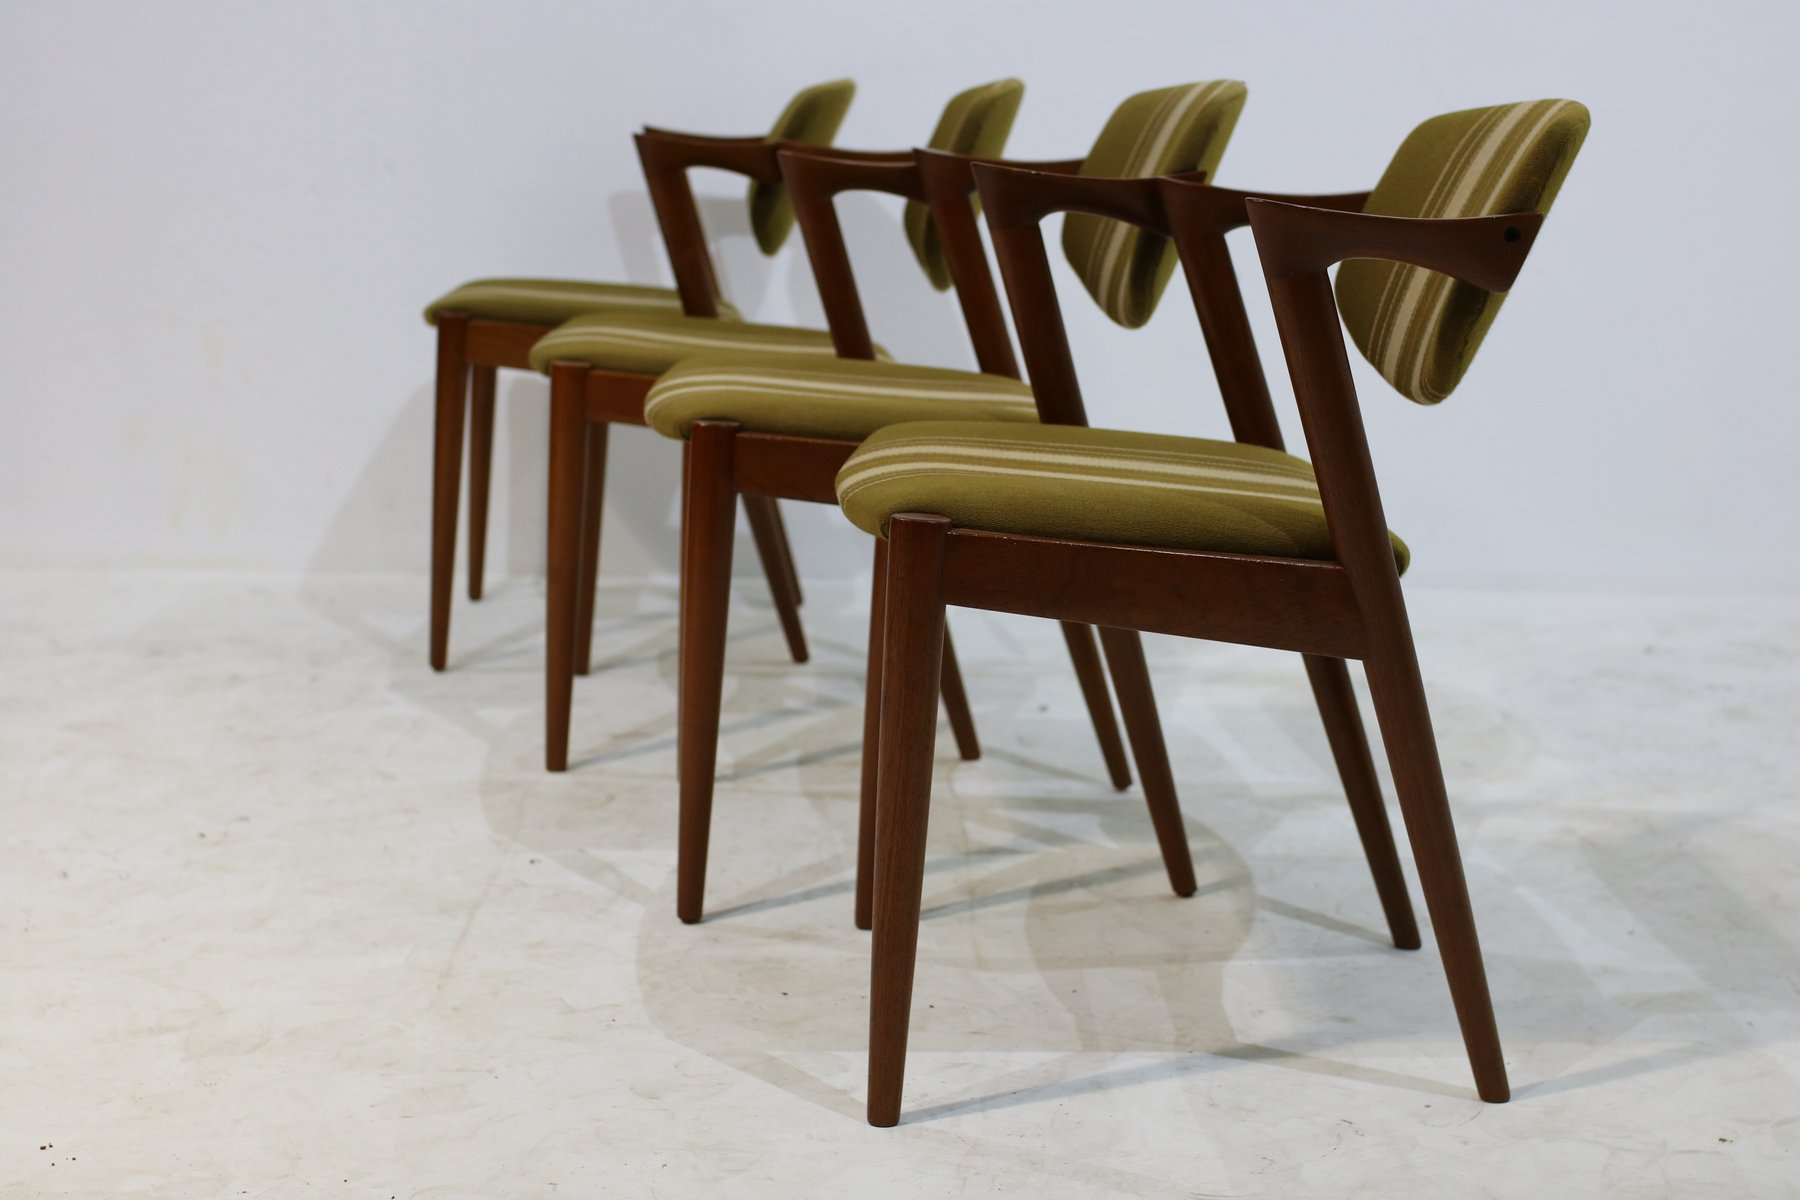 Vintage Model 42 Chairs by Kai Kristiansen Set of 4 for sale at